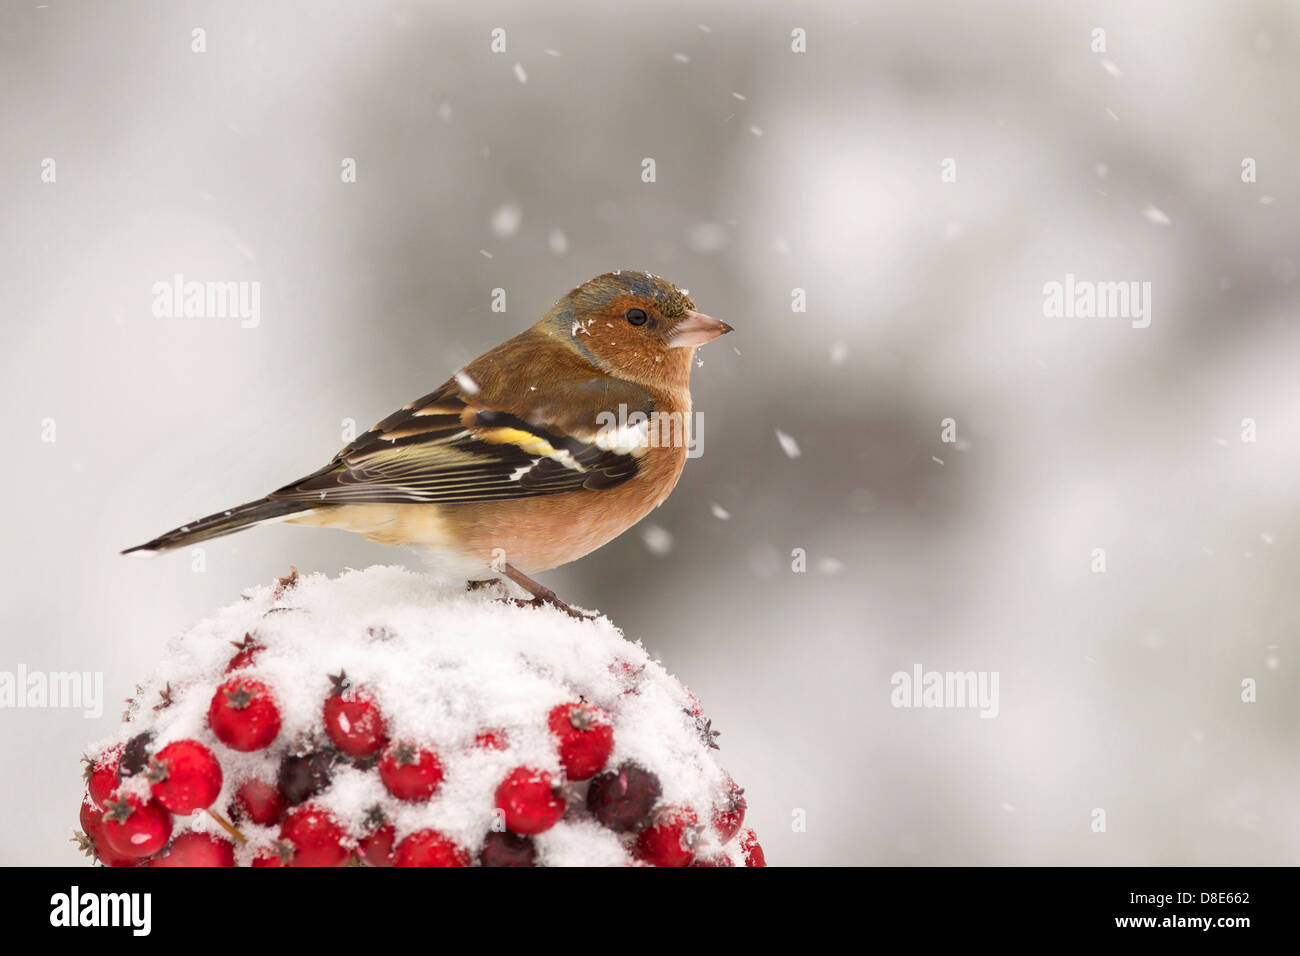 Portrait of a Chaffinch in the snow on red berries - Stock Image